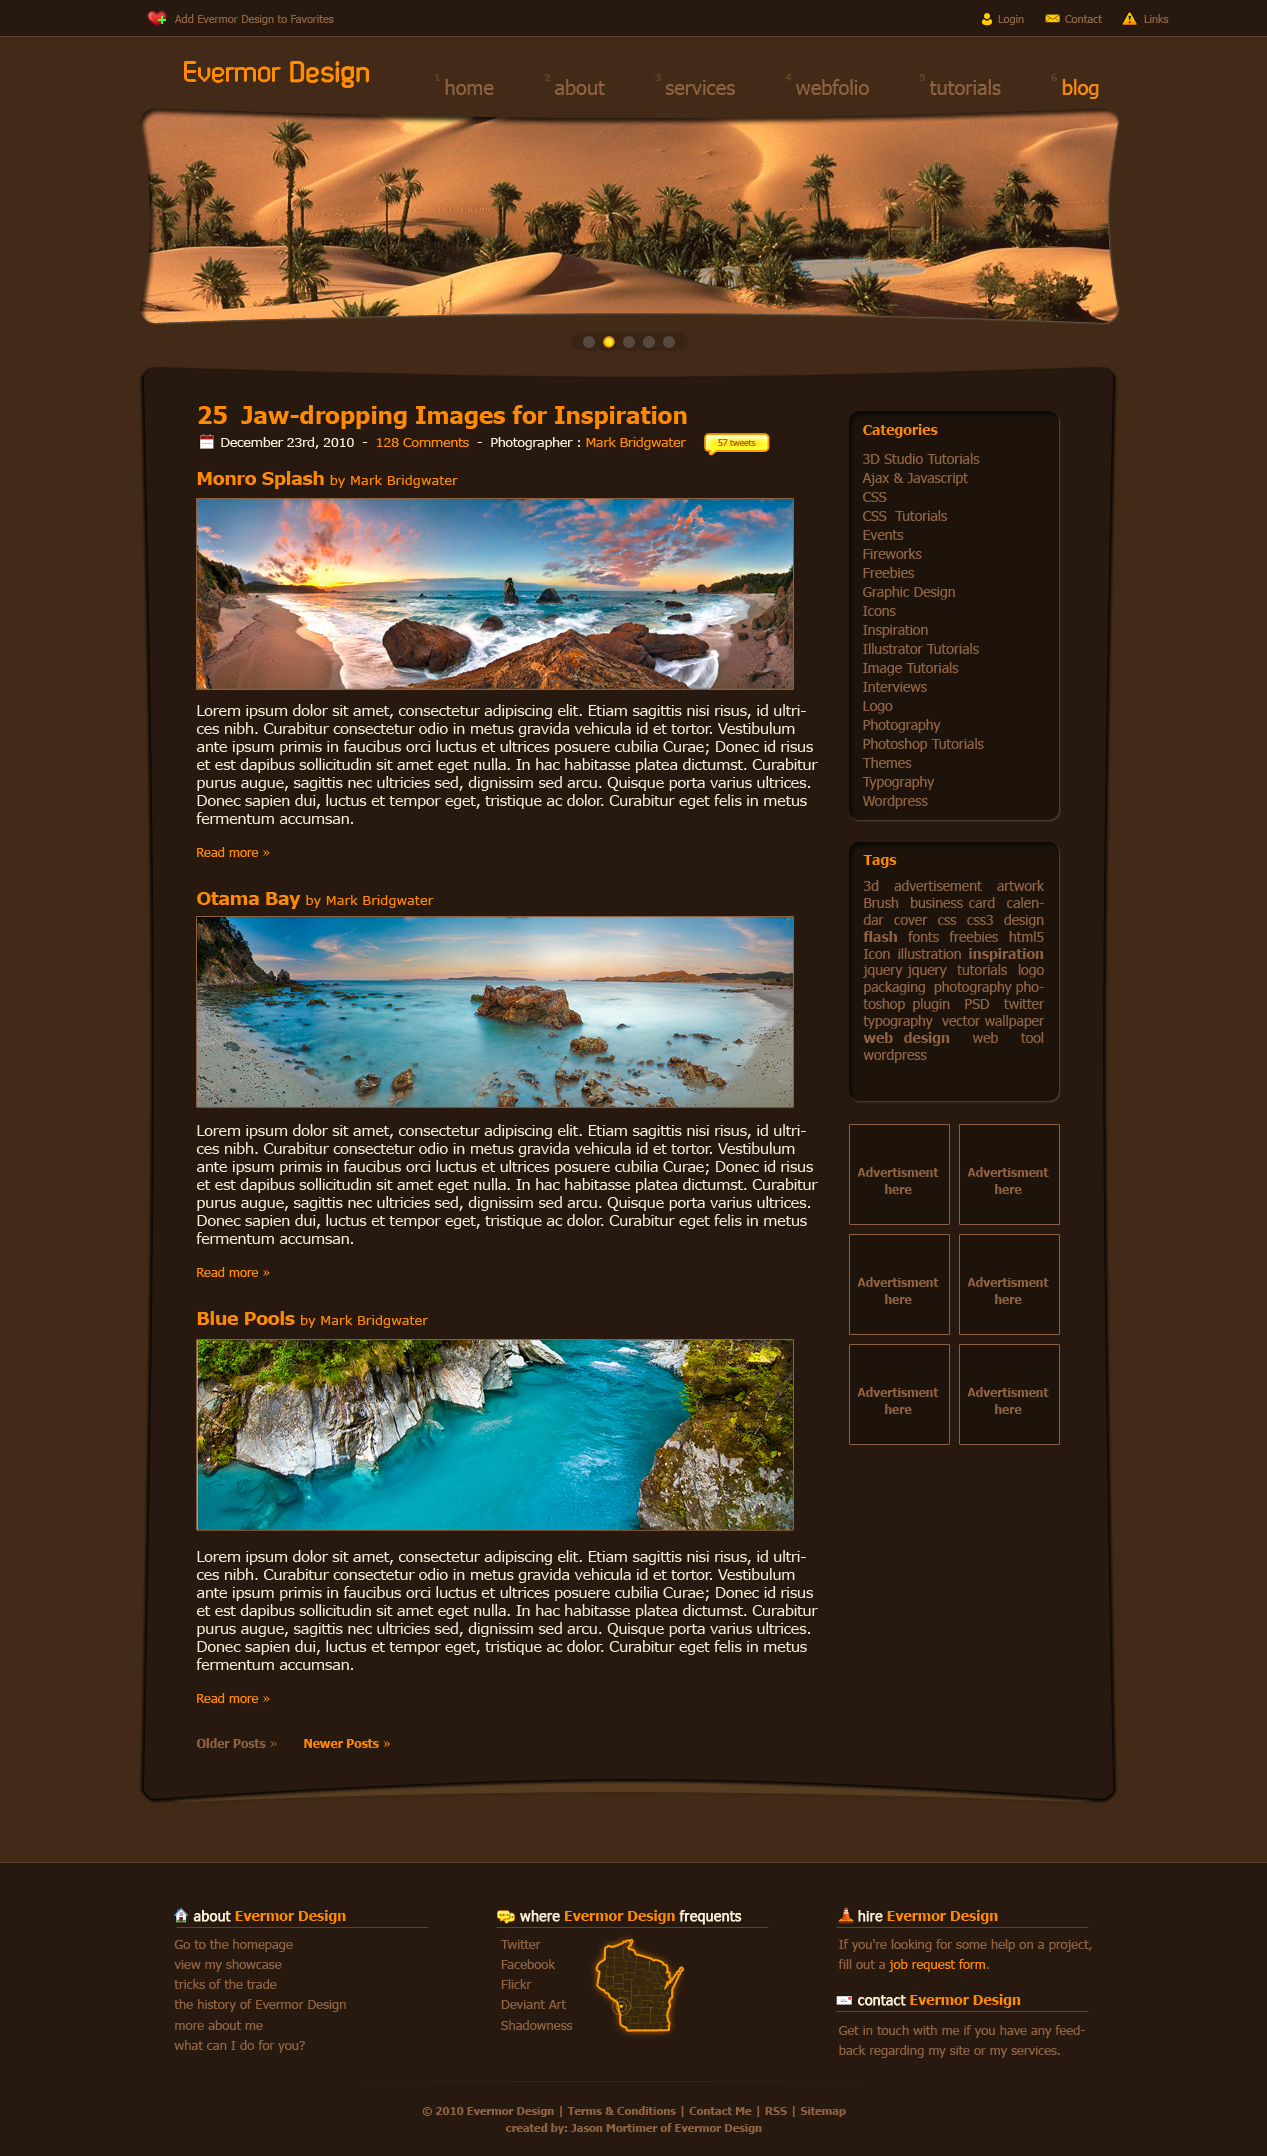 Evermor Blog Design by Remitrom73